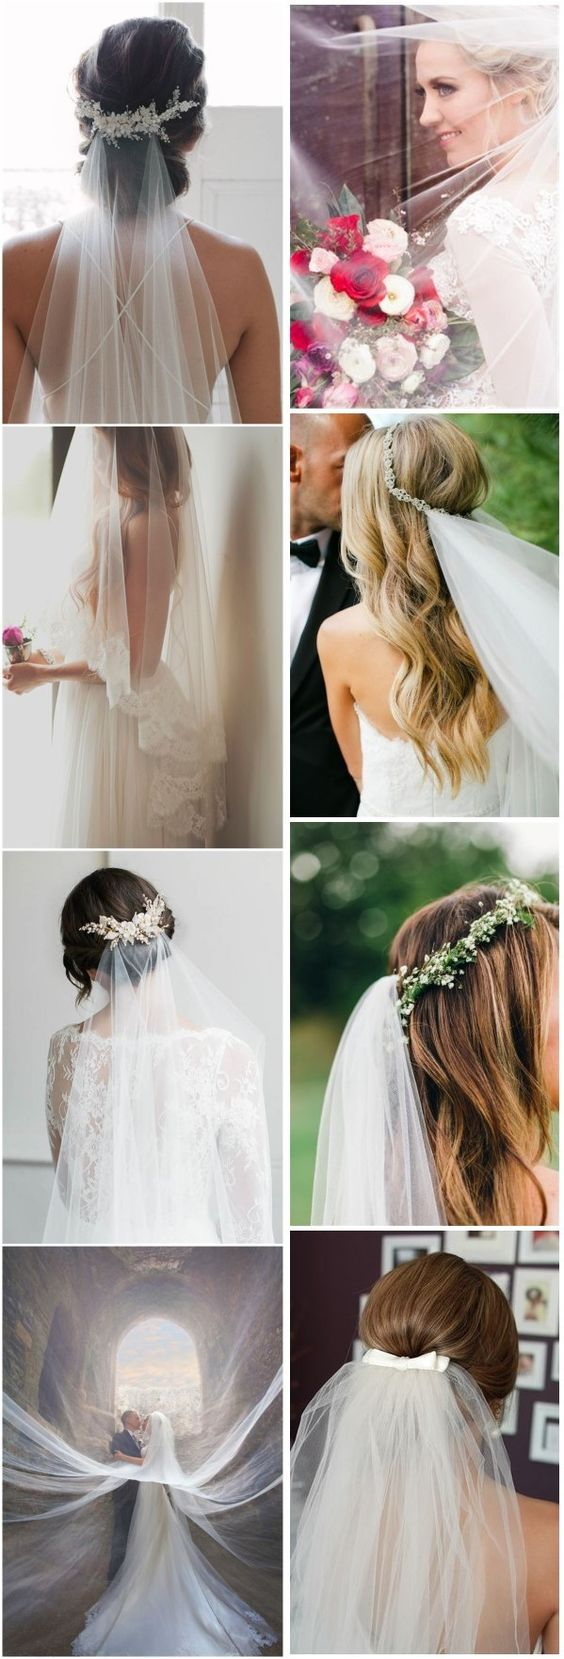 Wedding veils ideas!